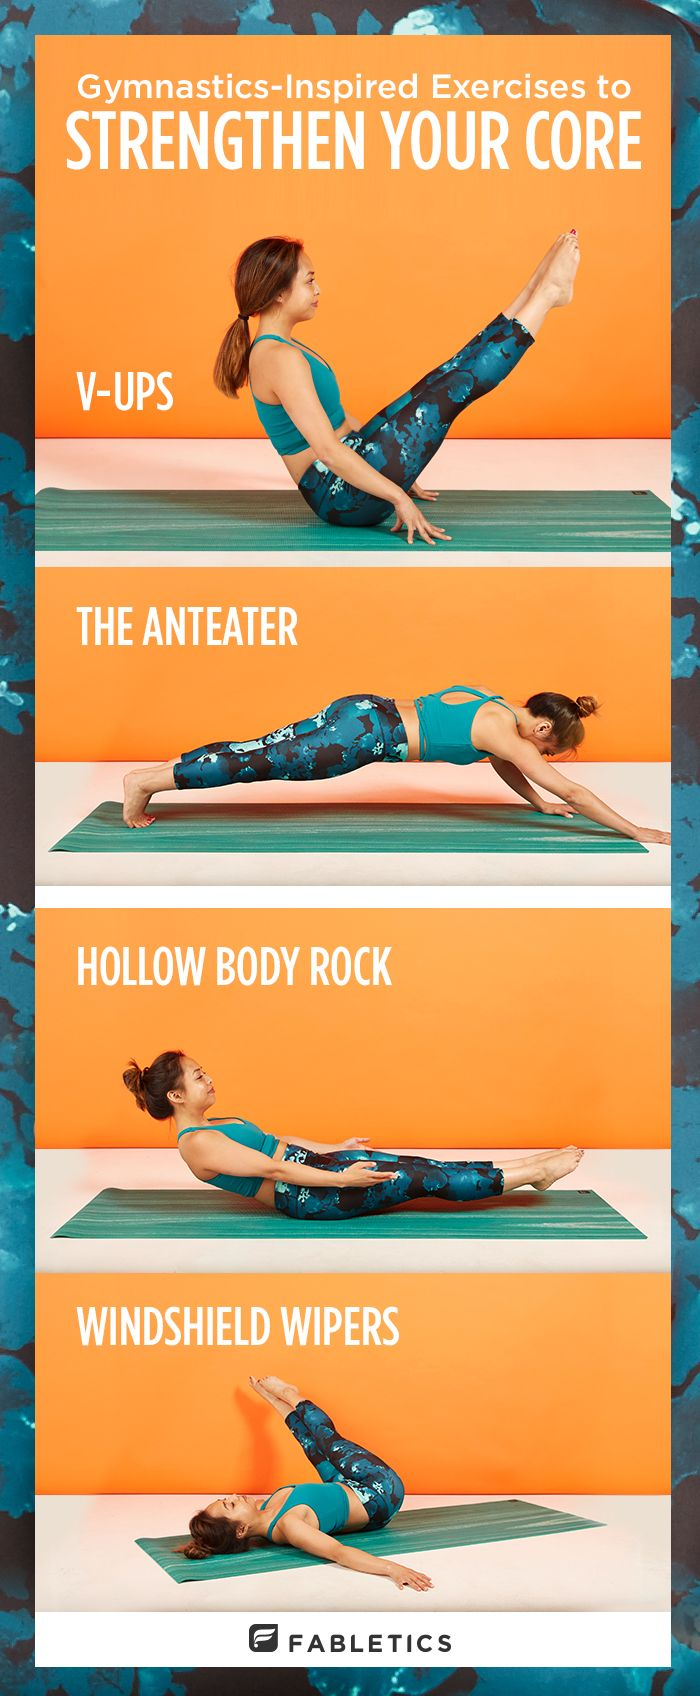 Work your core with these gymnastics-inspired workouts!                                                                                                                                                                                 More